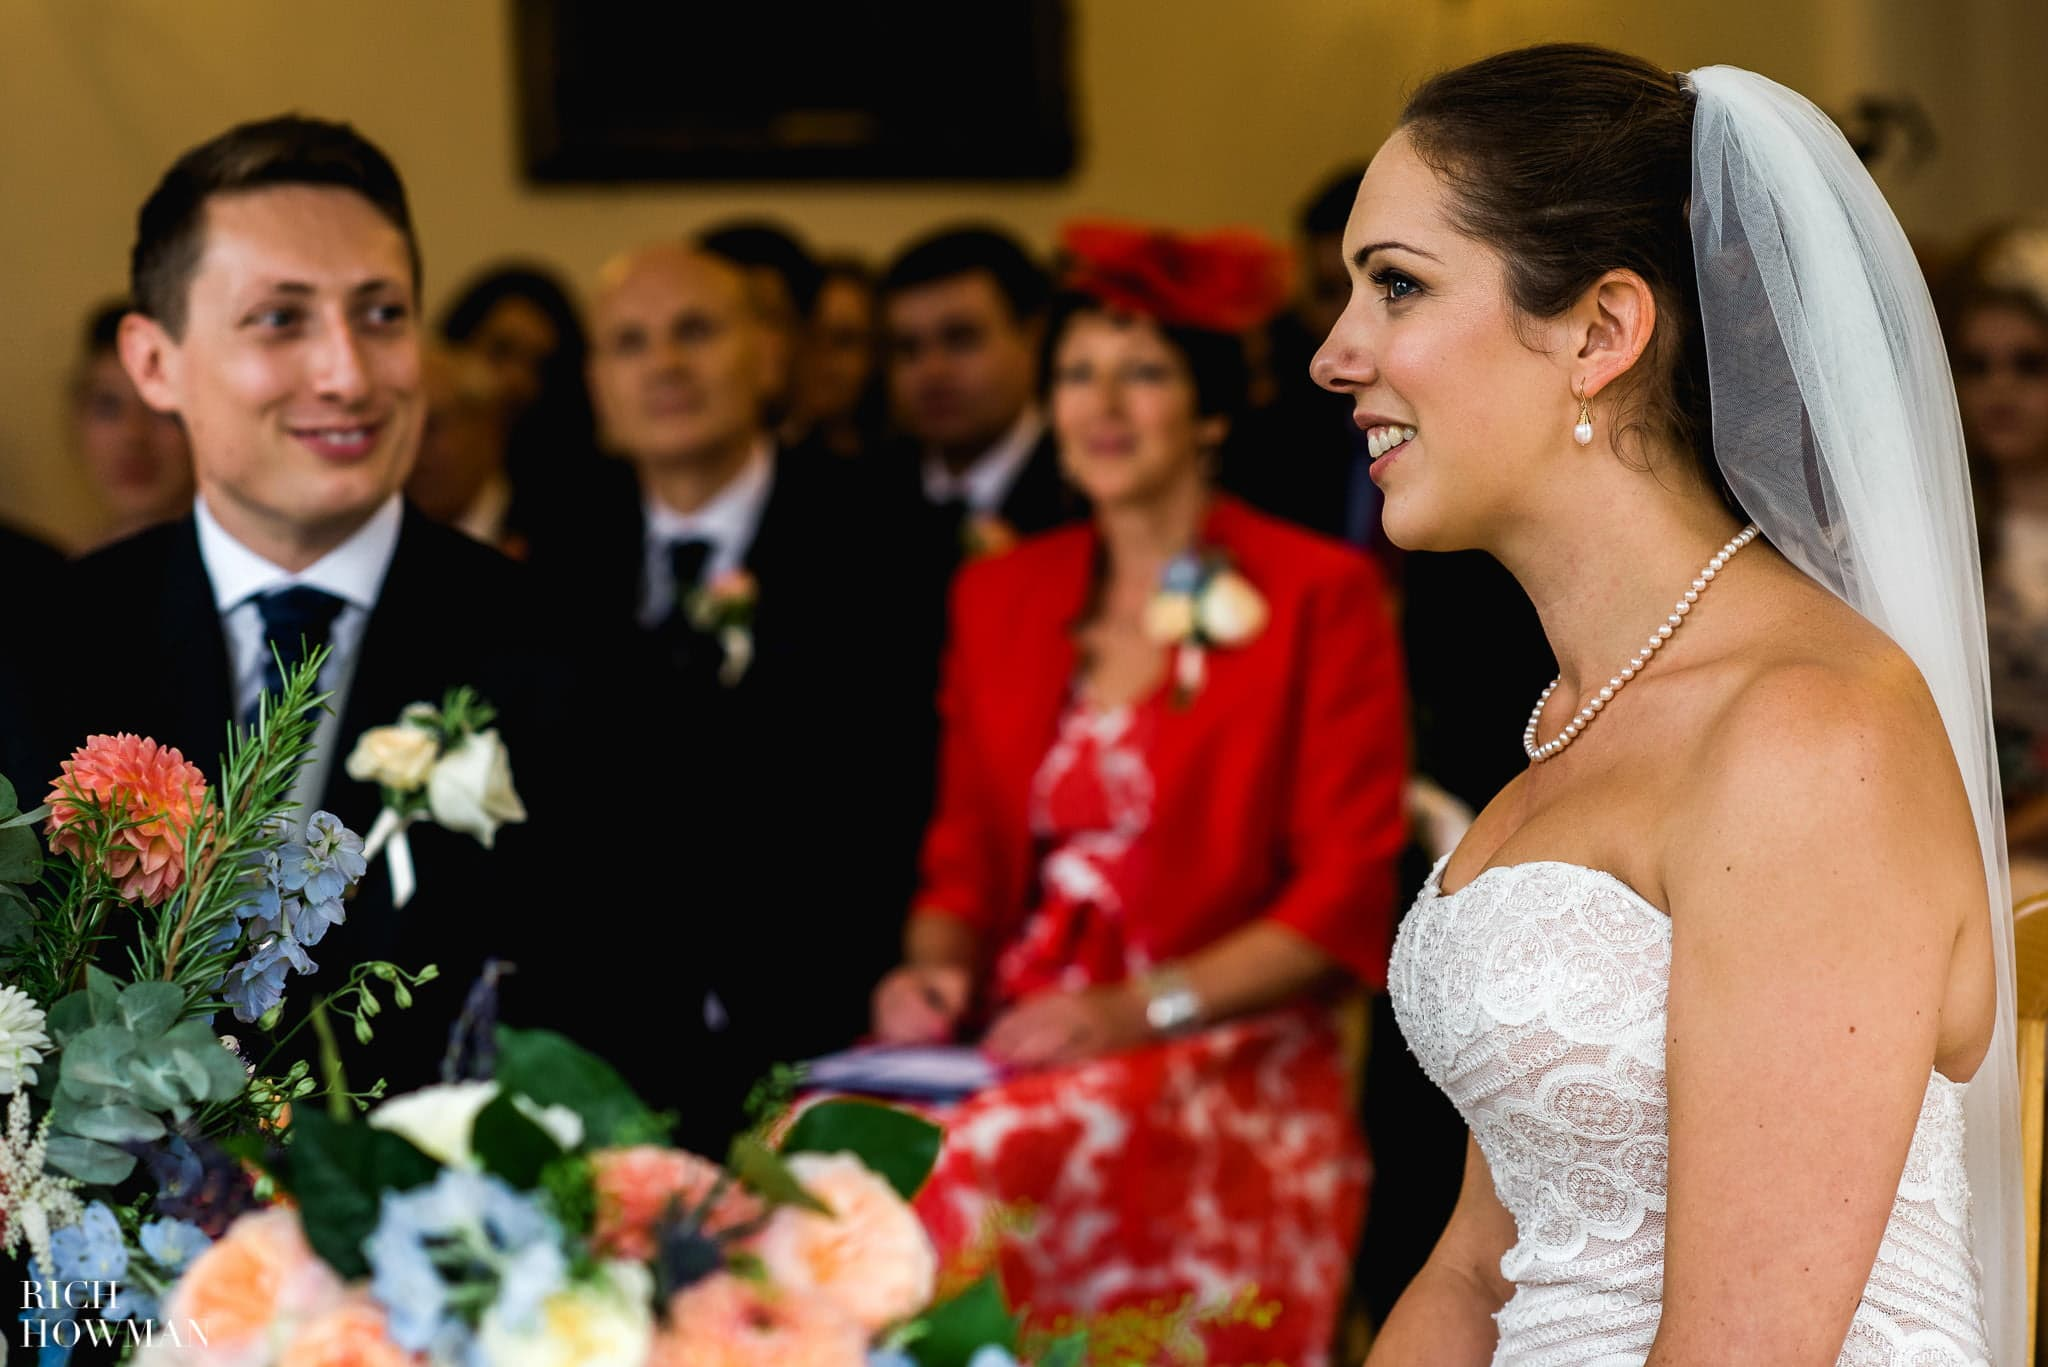 The groom looks at his new wife during their wedding ceremony at Cambridge Cottage in Kew Gardens.